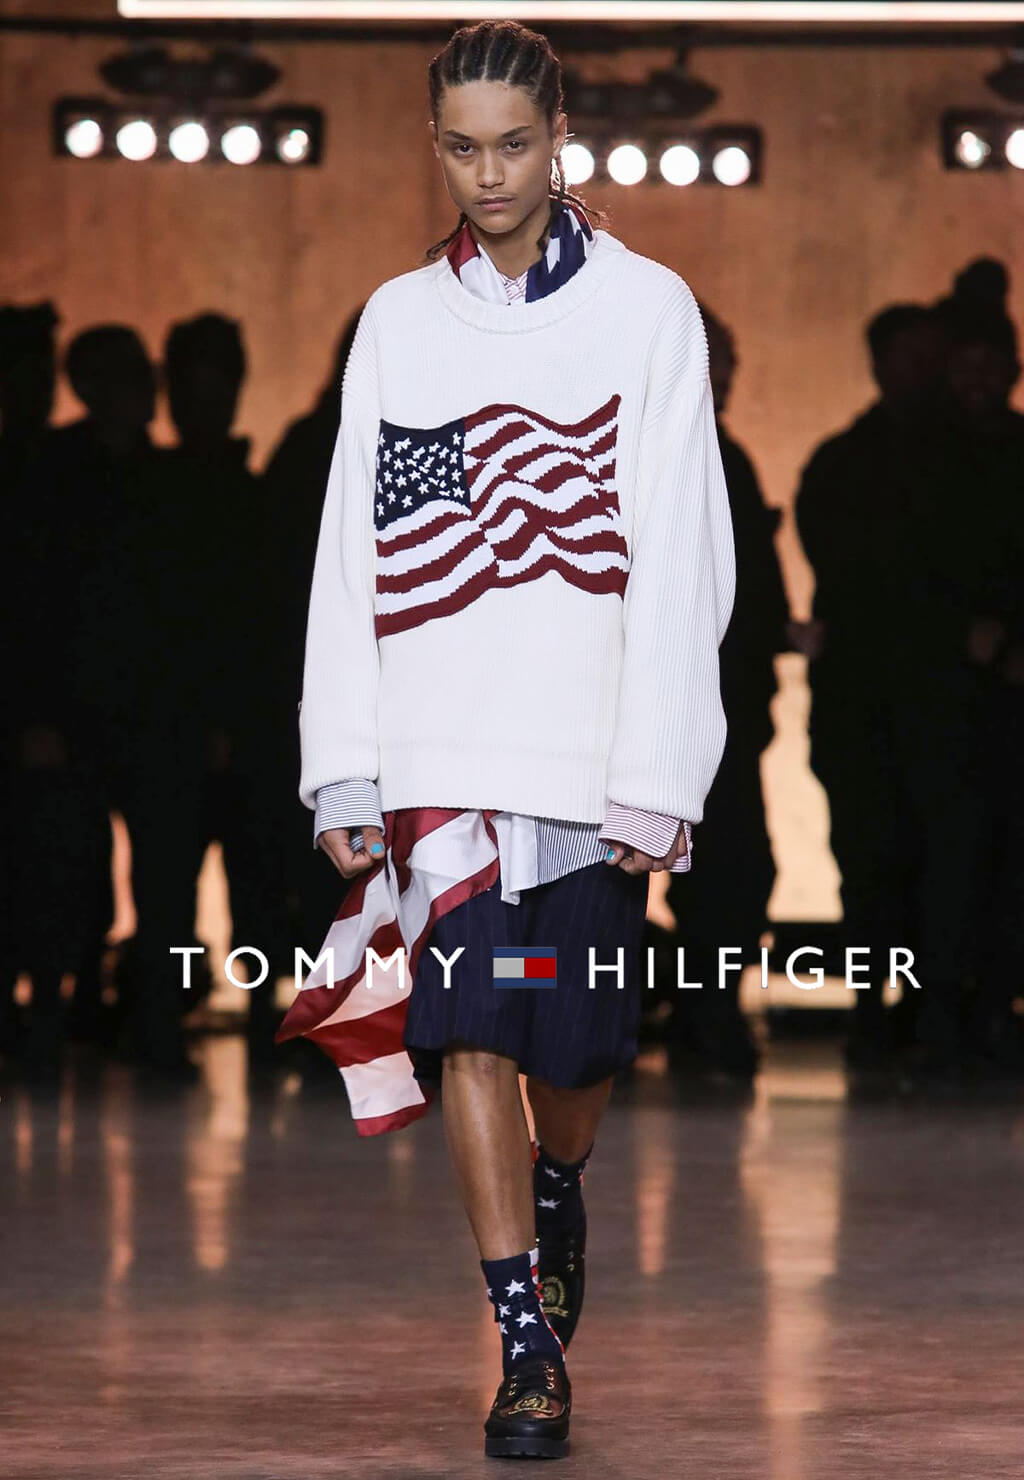 Joaquim Tommy Hilfiger FW London 2020